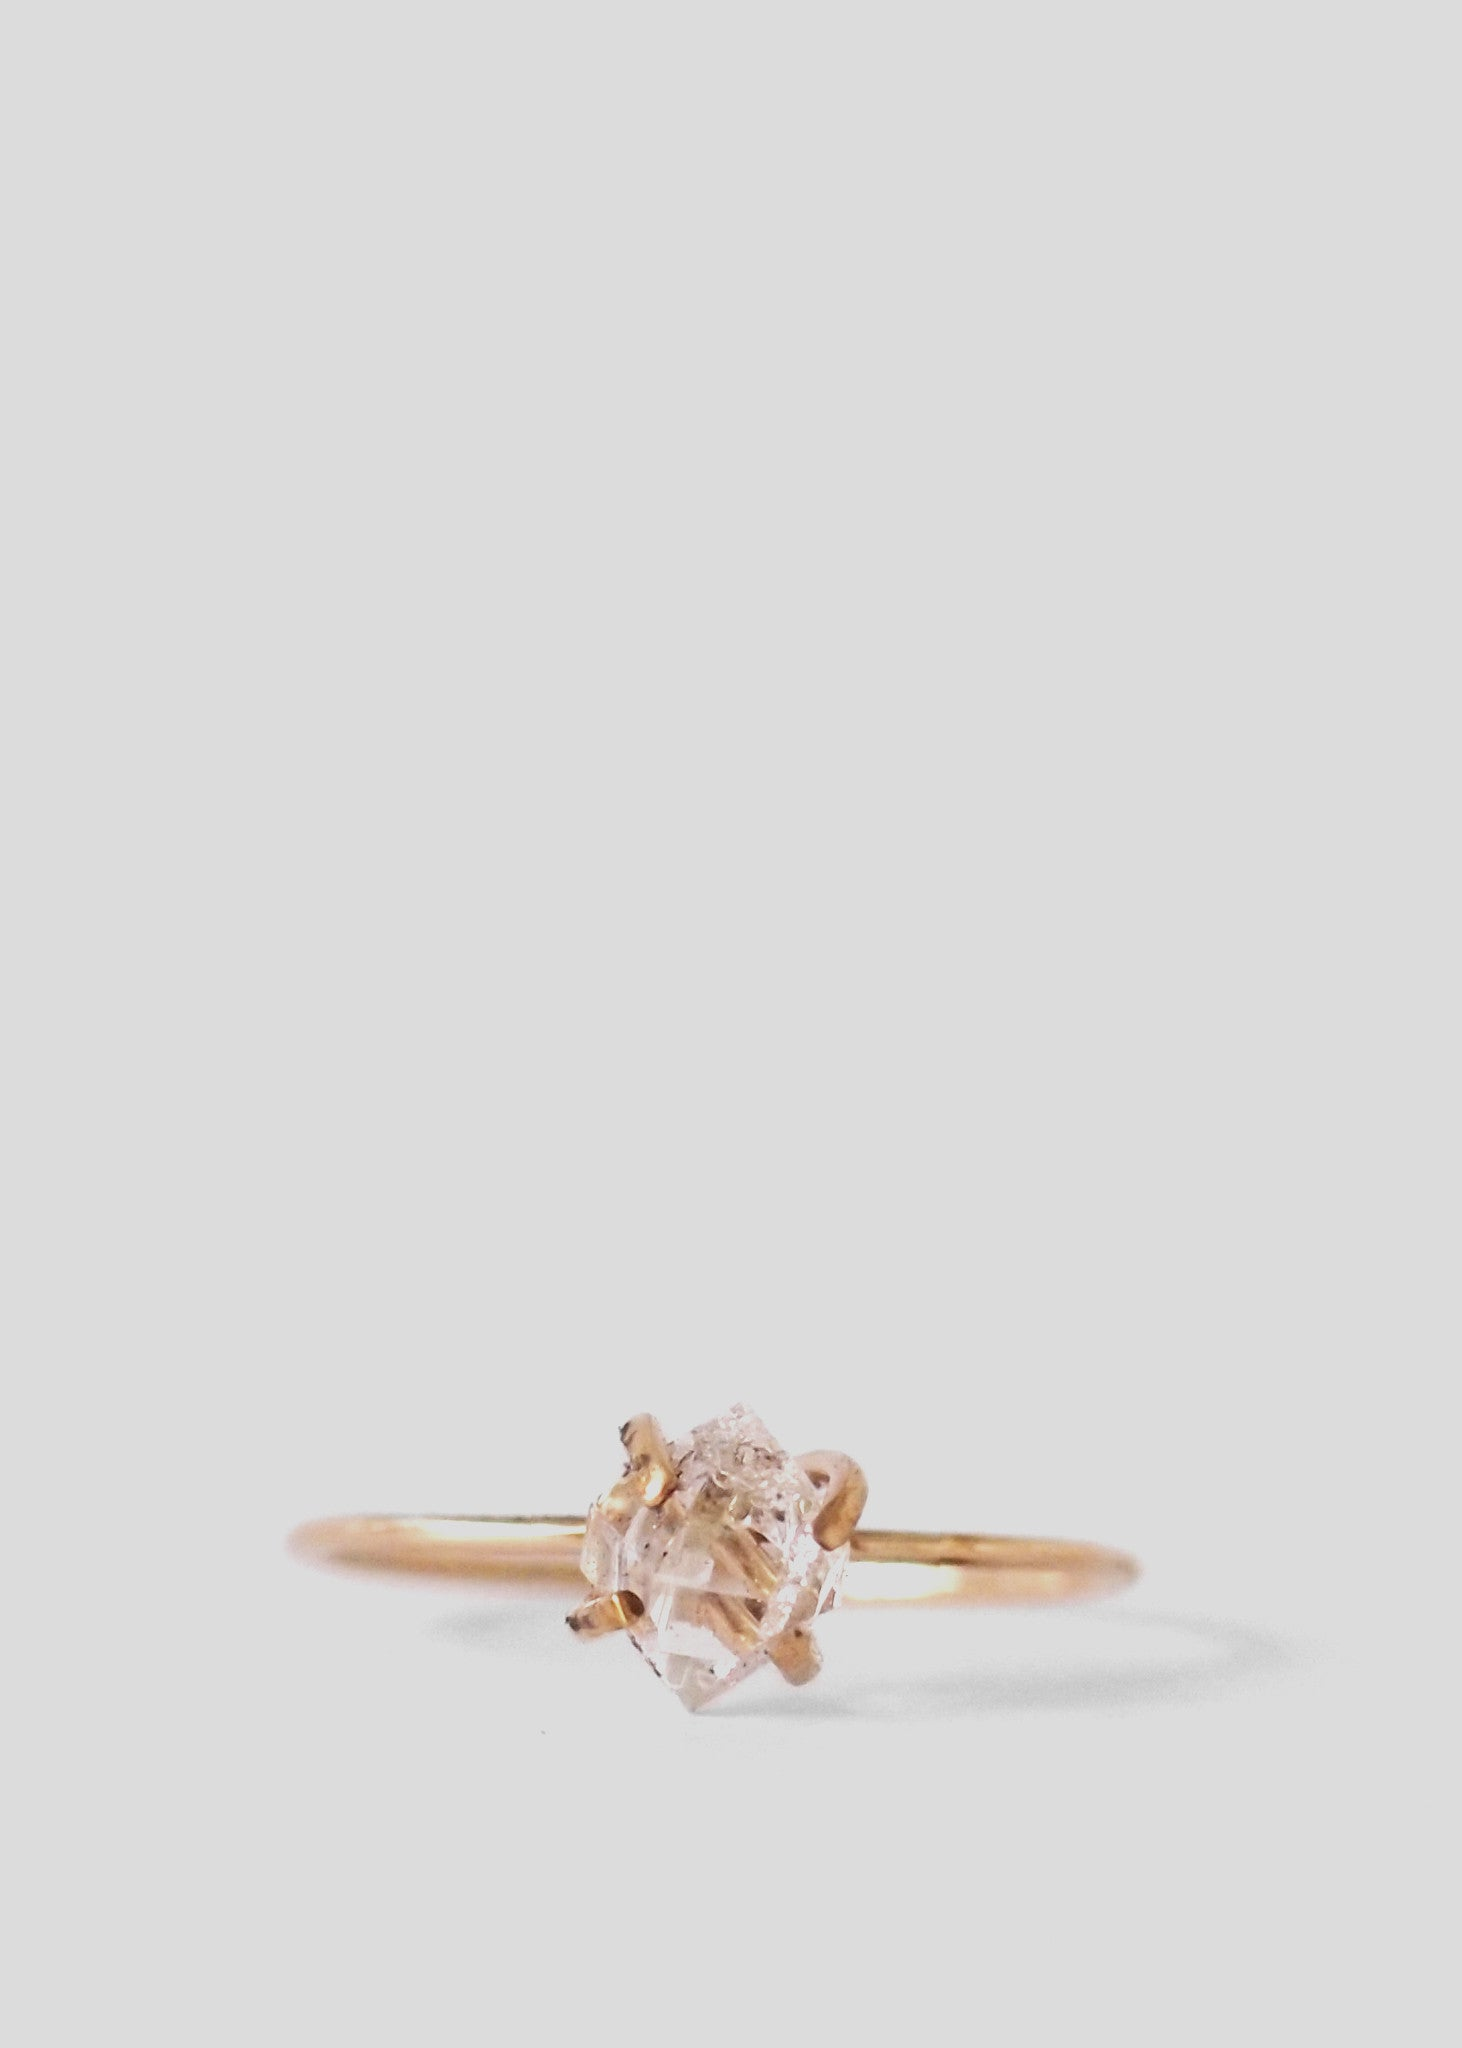 Solitaire Ring 9CT Gold, Raw Herkimer Diamond